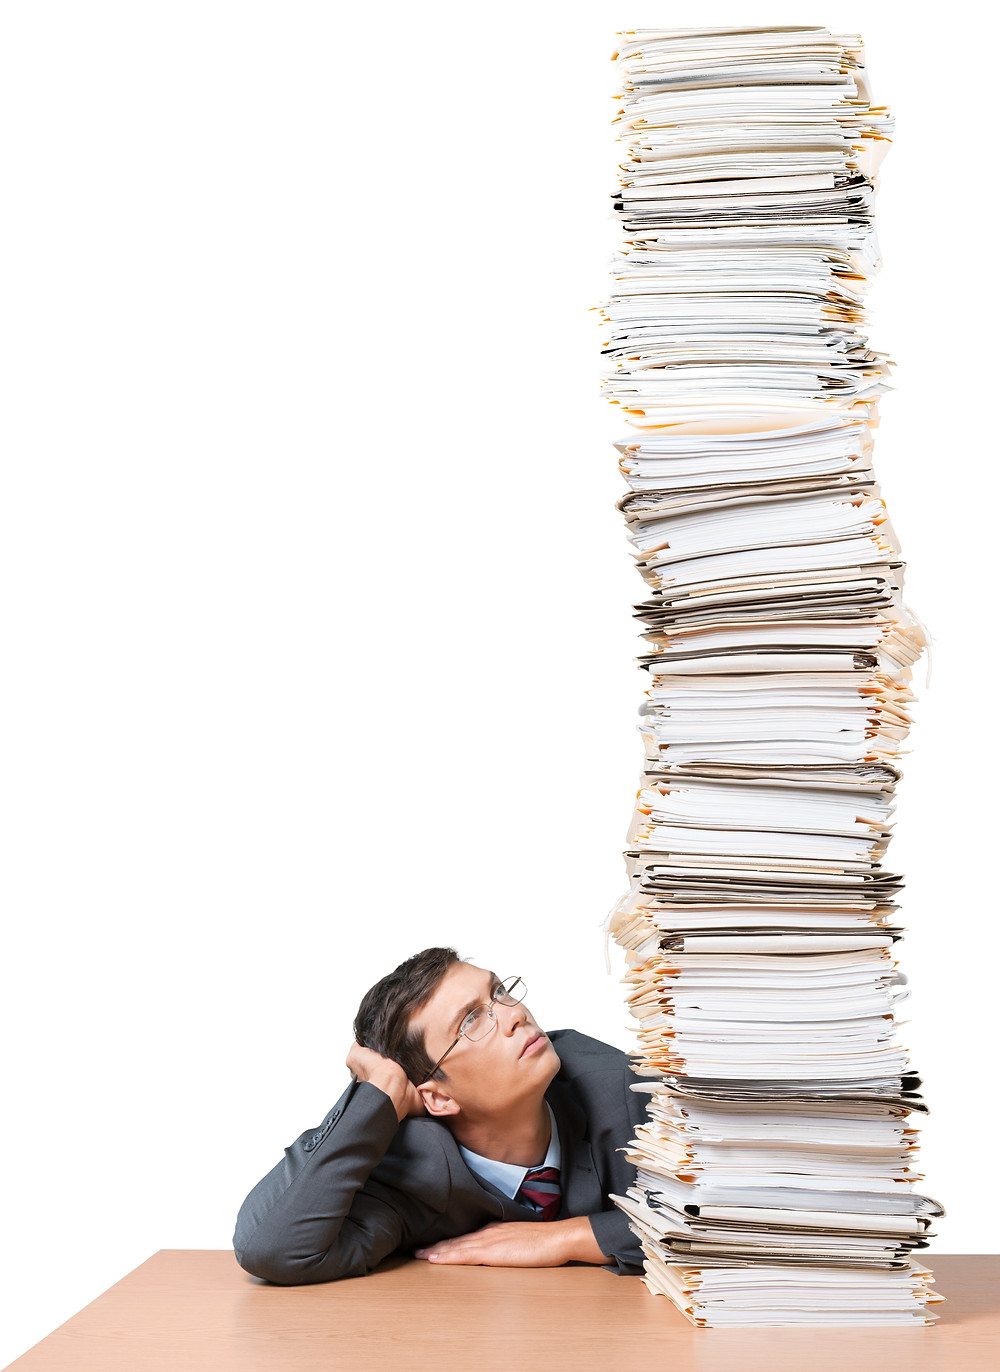 Human Resources Manager looks at a huge stack of resumes.